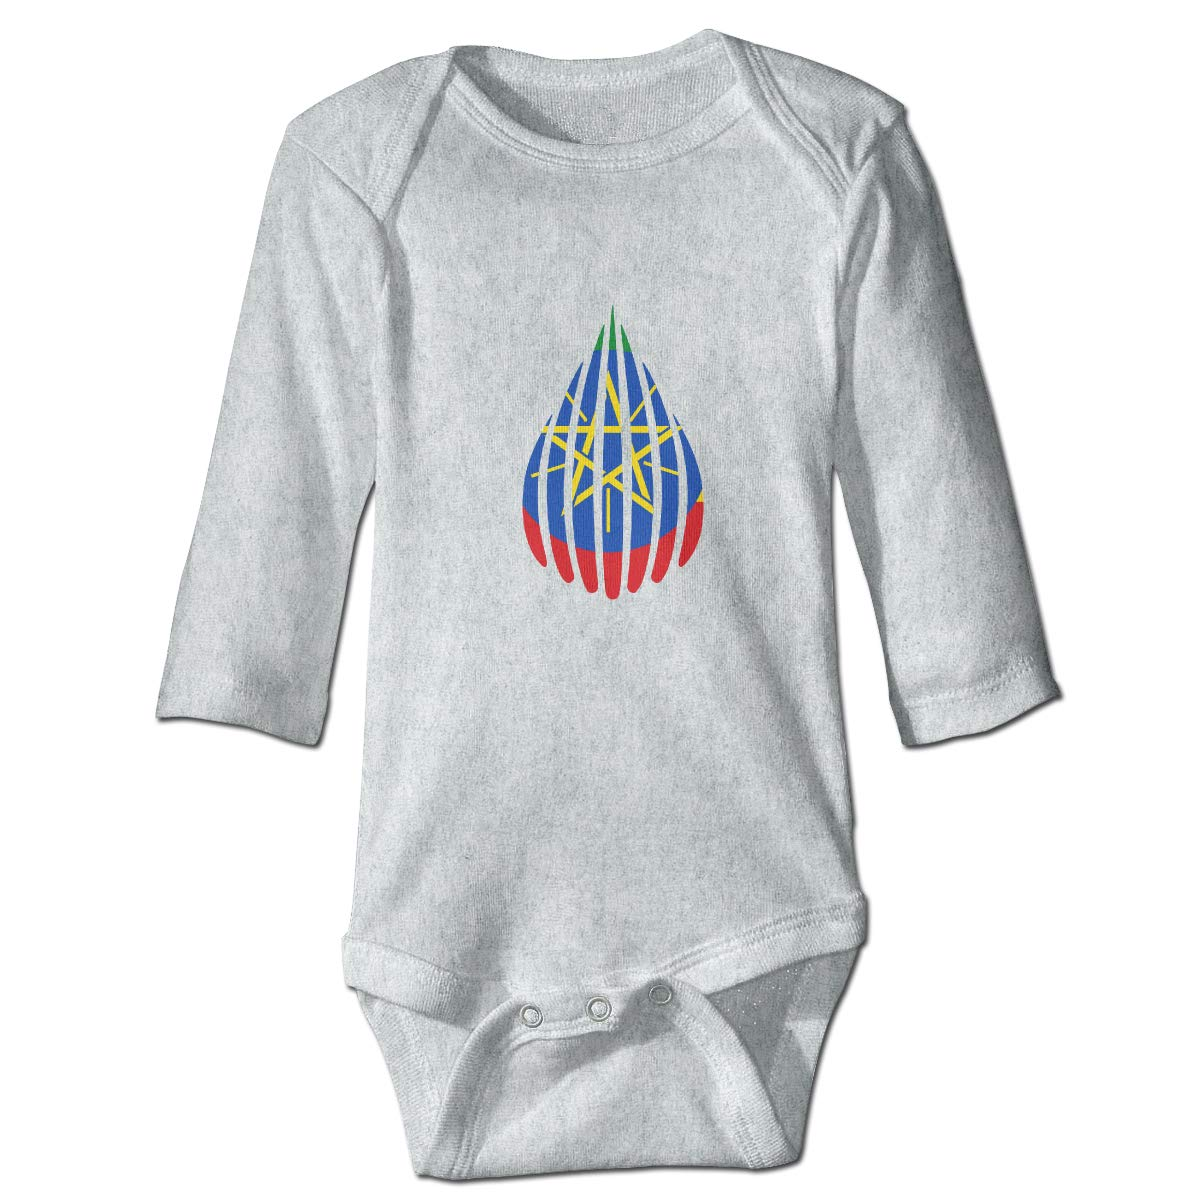 Baby Infant Toddler Long Sleeve Climb Romper Dropil Drop Crypto Ethiopia Flag Unisex Button Playsuit Outfit Clothes